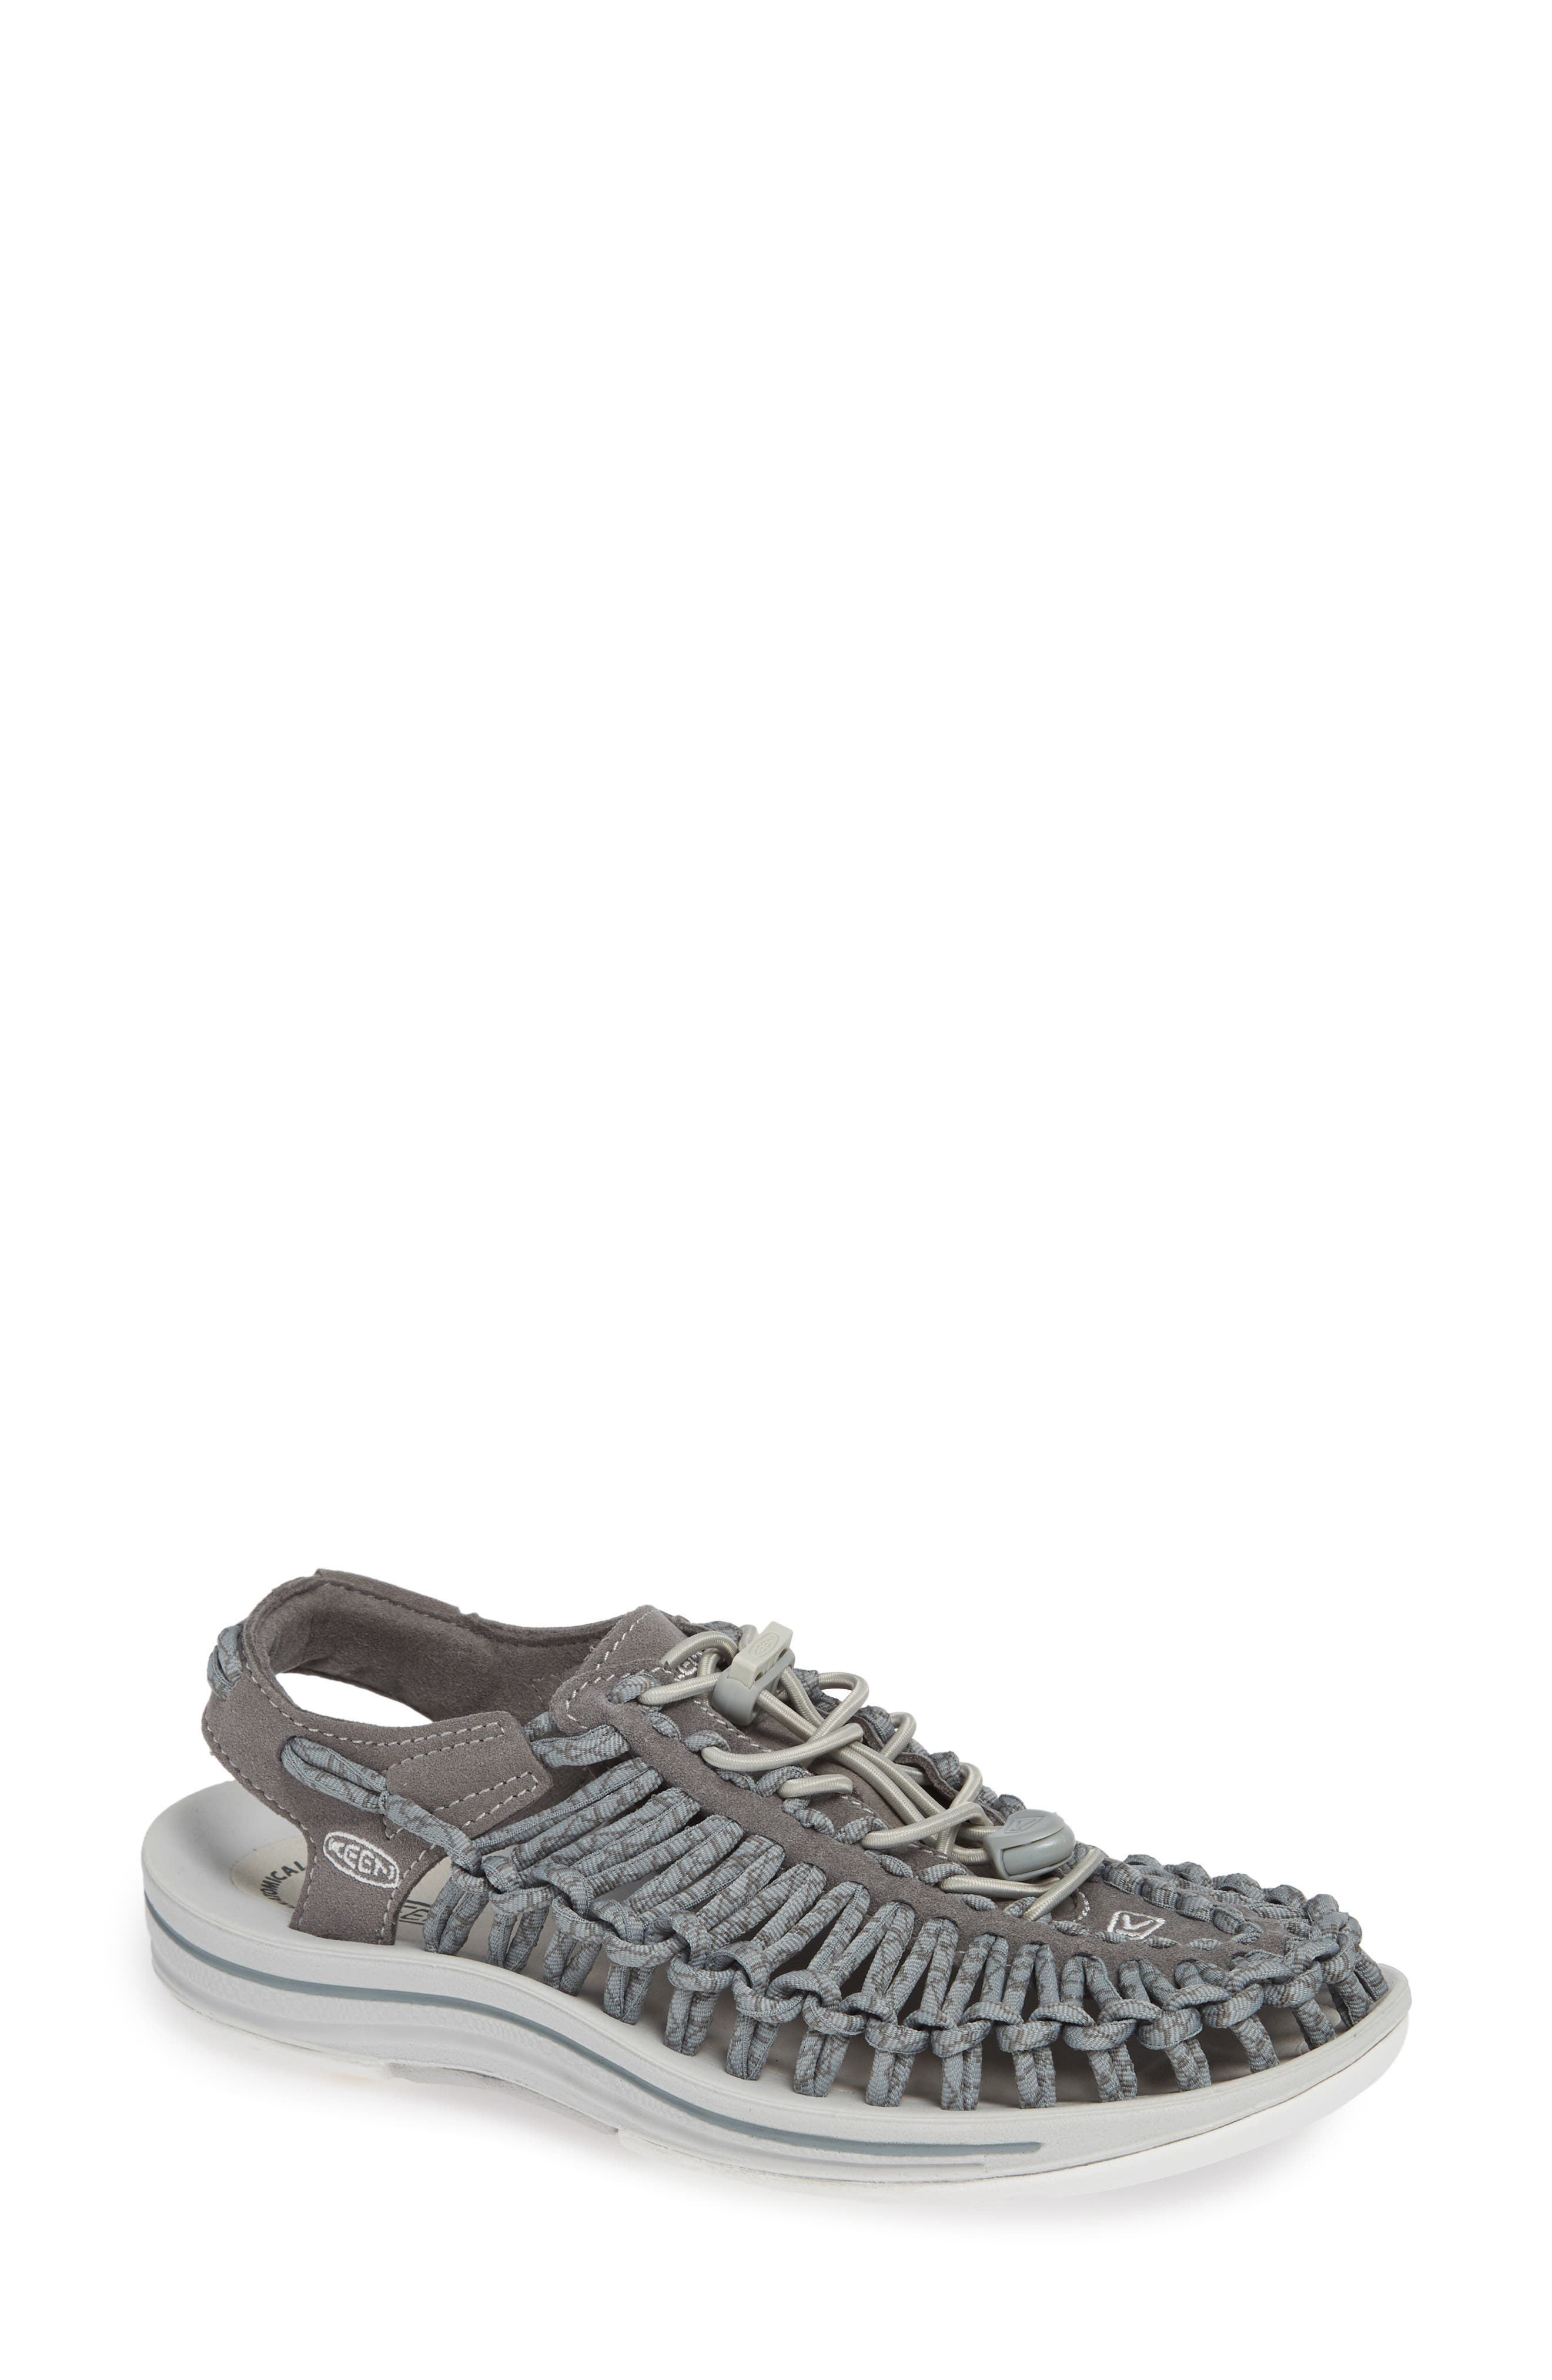 'Uneek' Water Sneaker,                         Main,                         color, NEUTRAL GRAY/ GARGOYLE